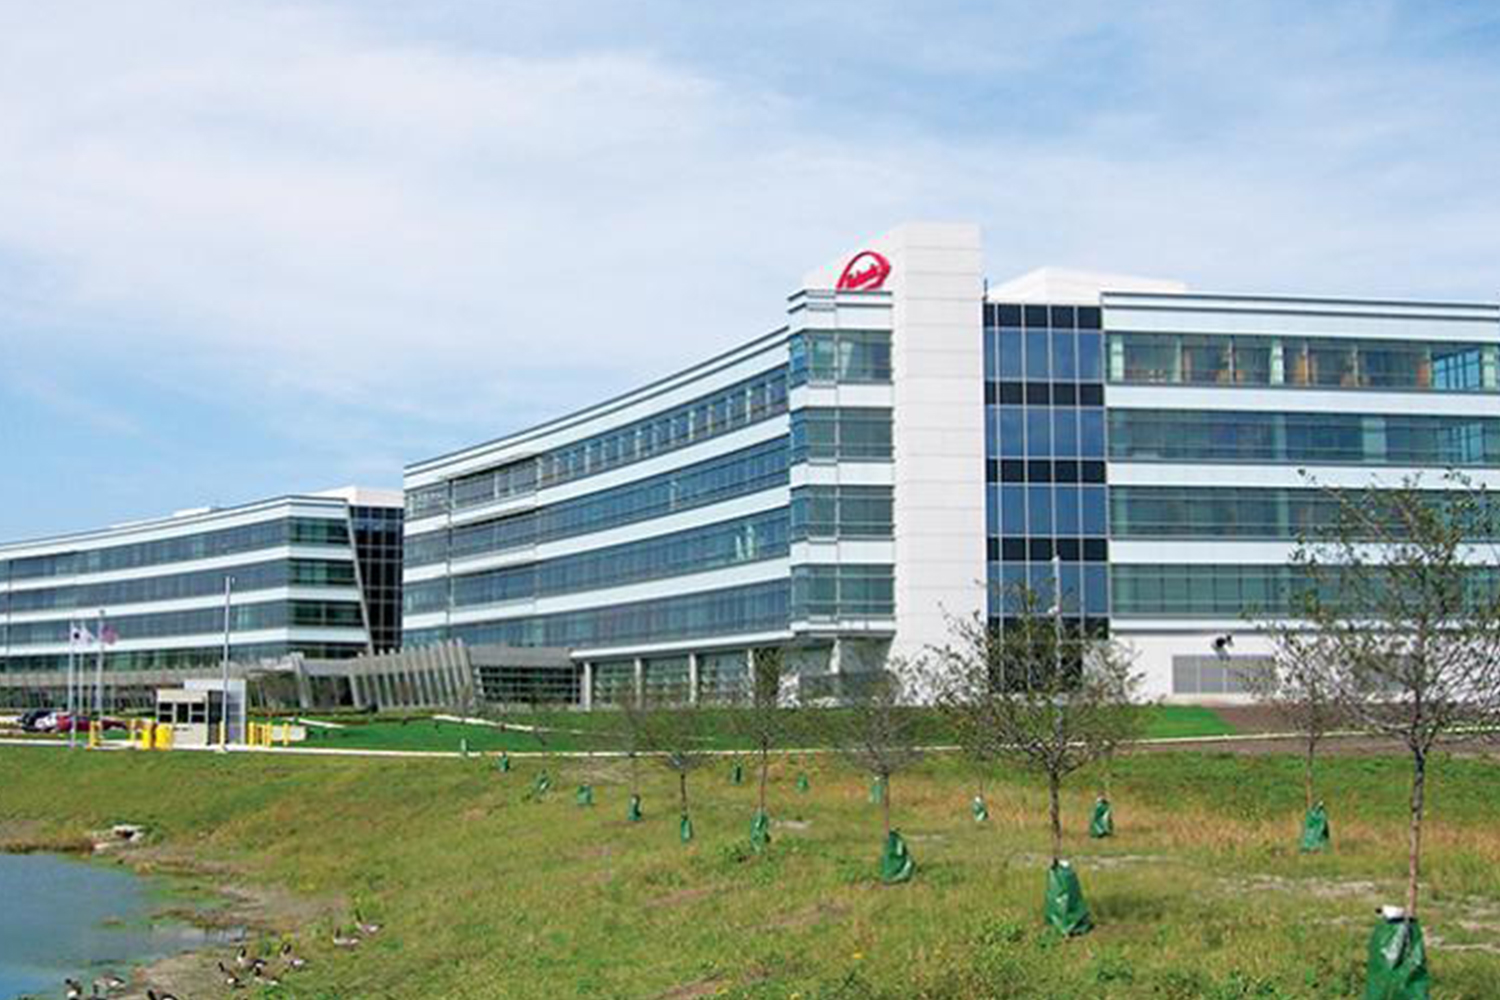 takeda-pharmaceuticals-headquarter-office-electrical-work-construction-projects-top-nationwide-contractors-wisconsin-chicago.jpg